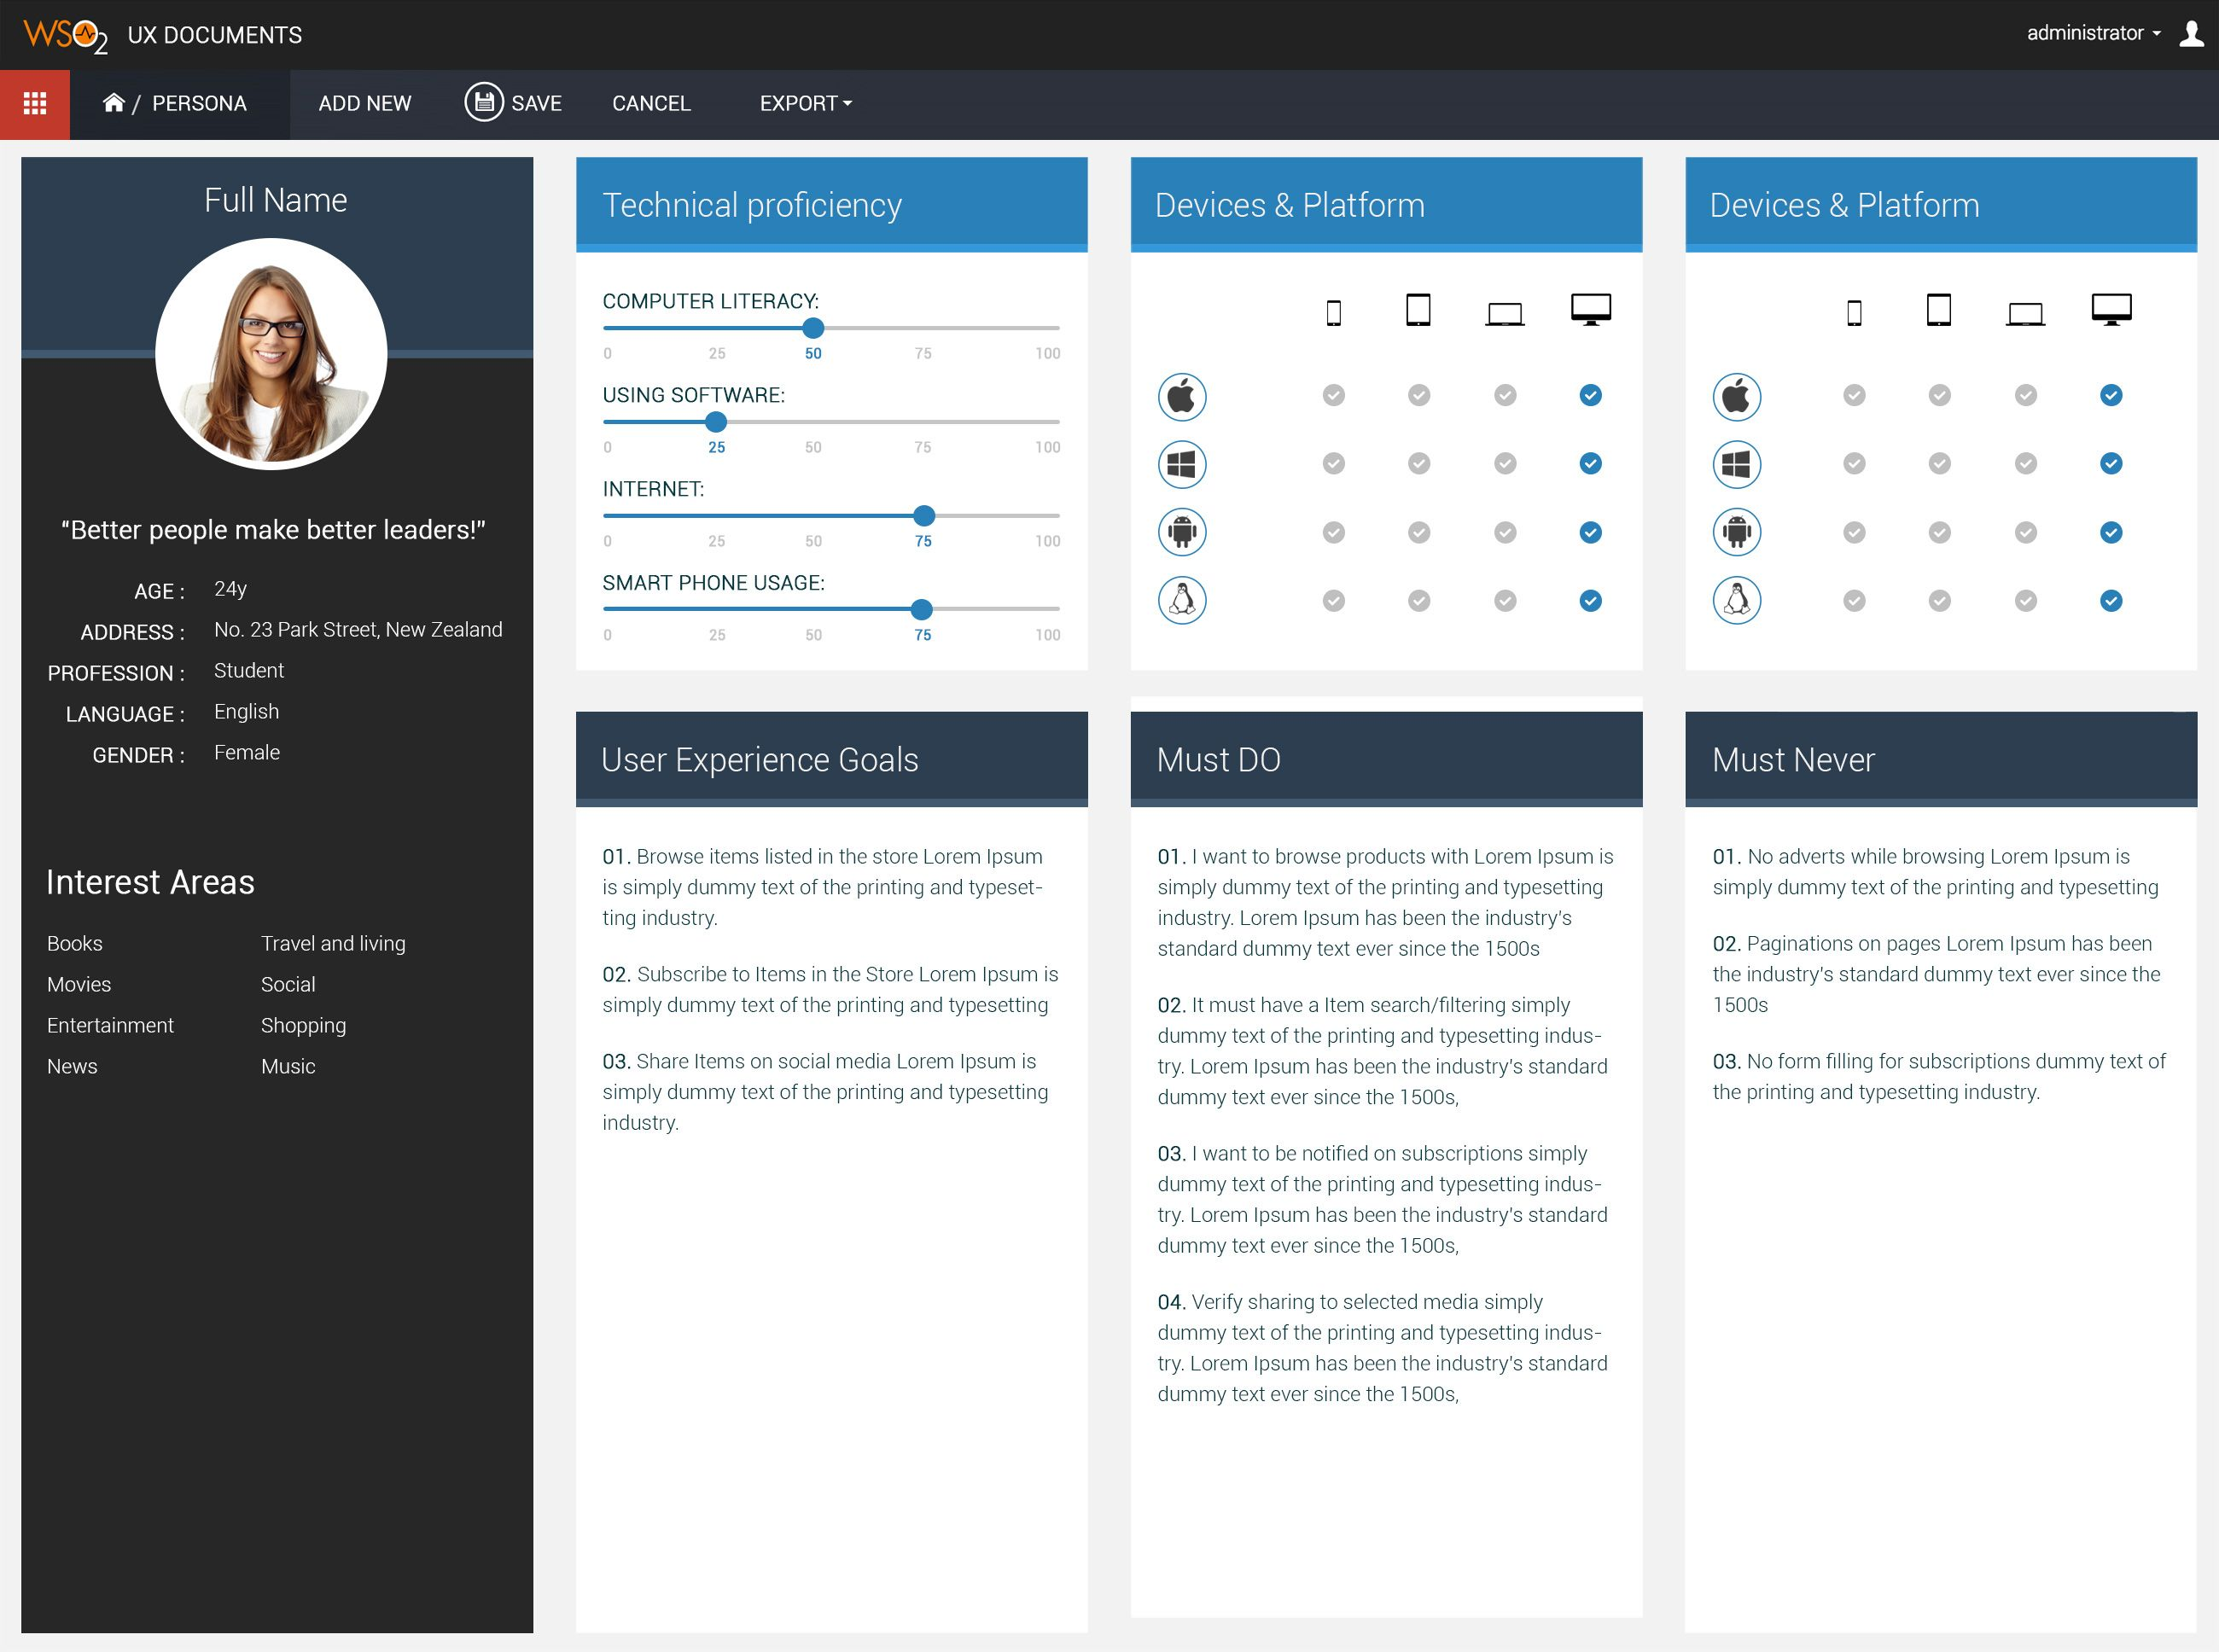 WSO2 UX] Persona template layout | Designs | Pinterest